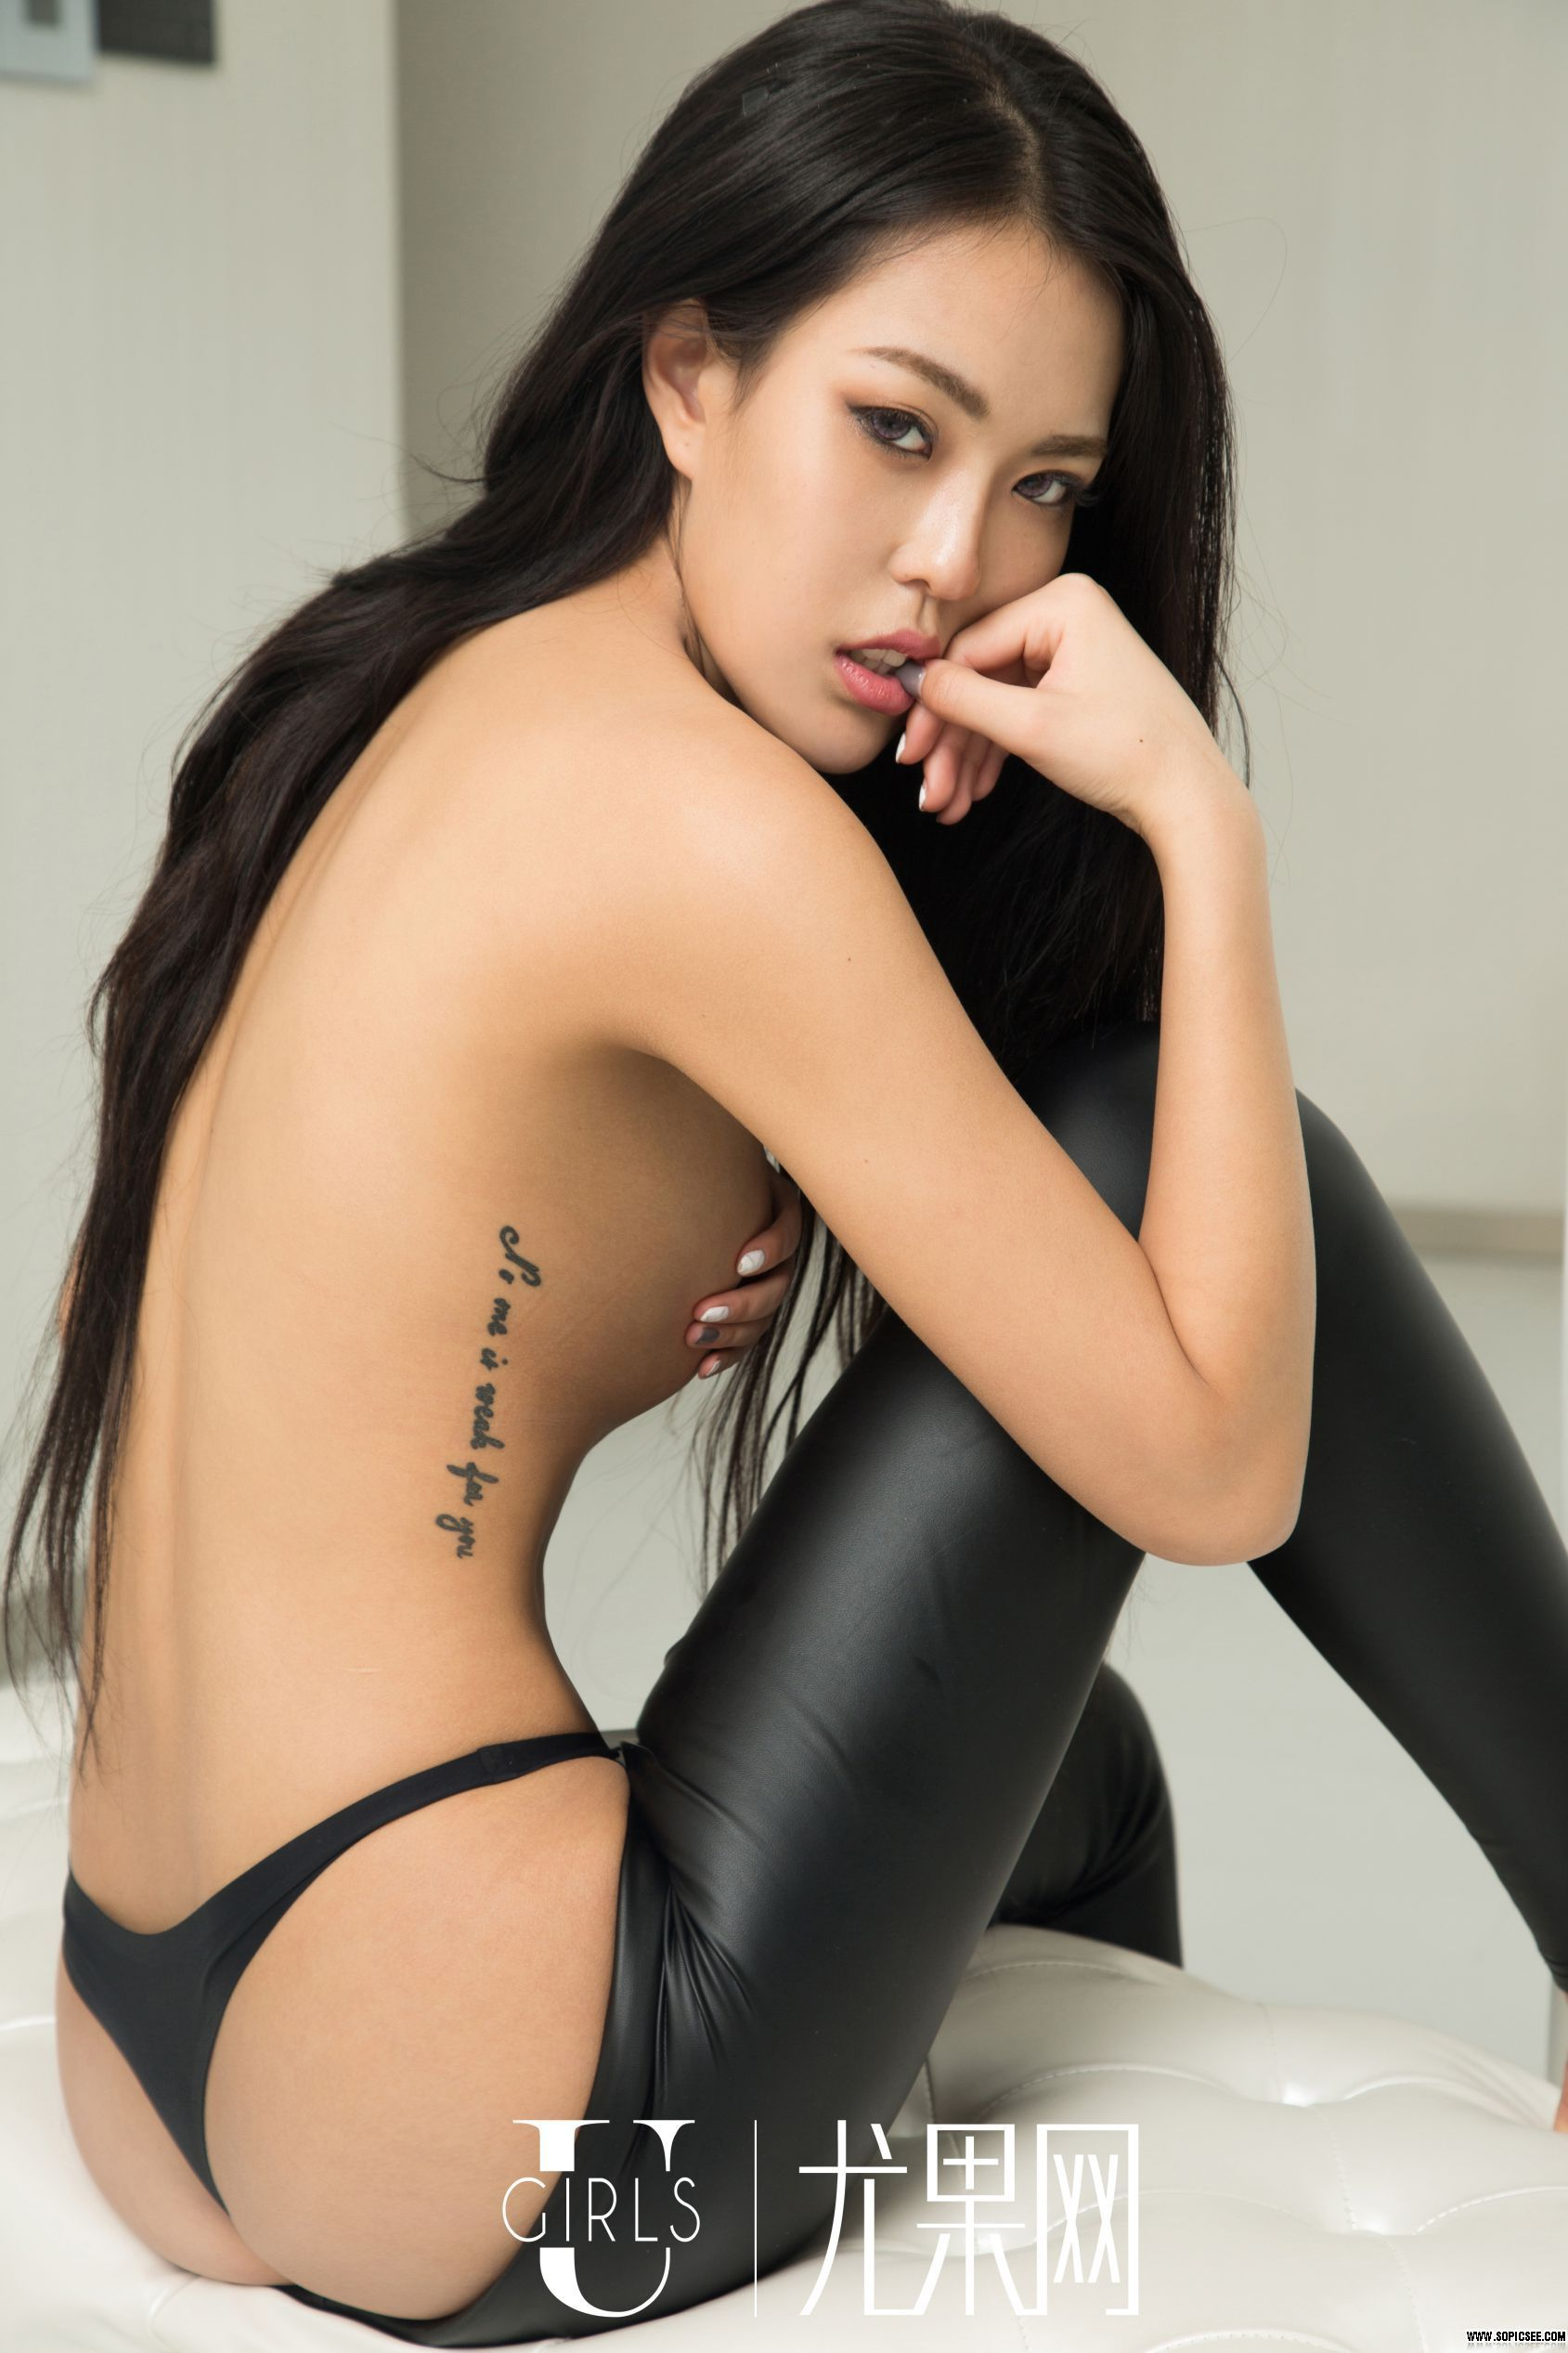 from Amos sexy asian women in lingerie